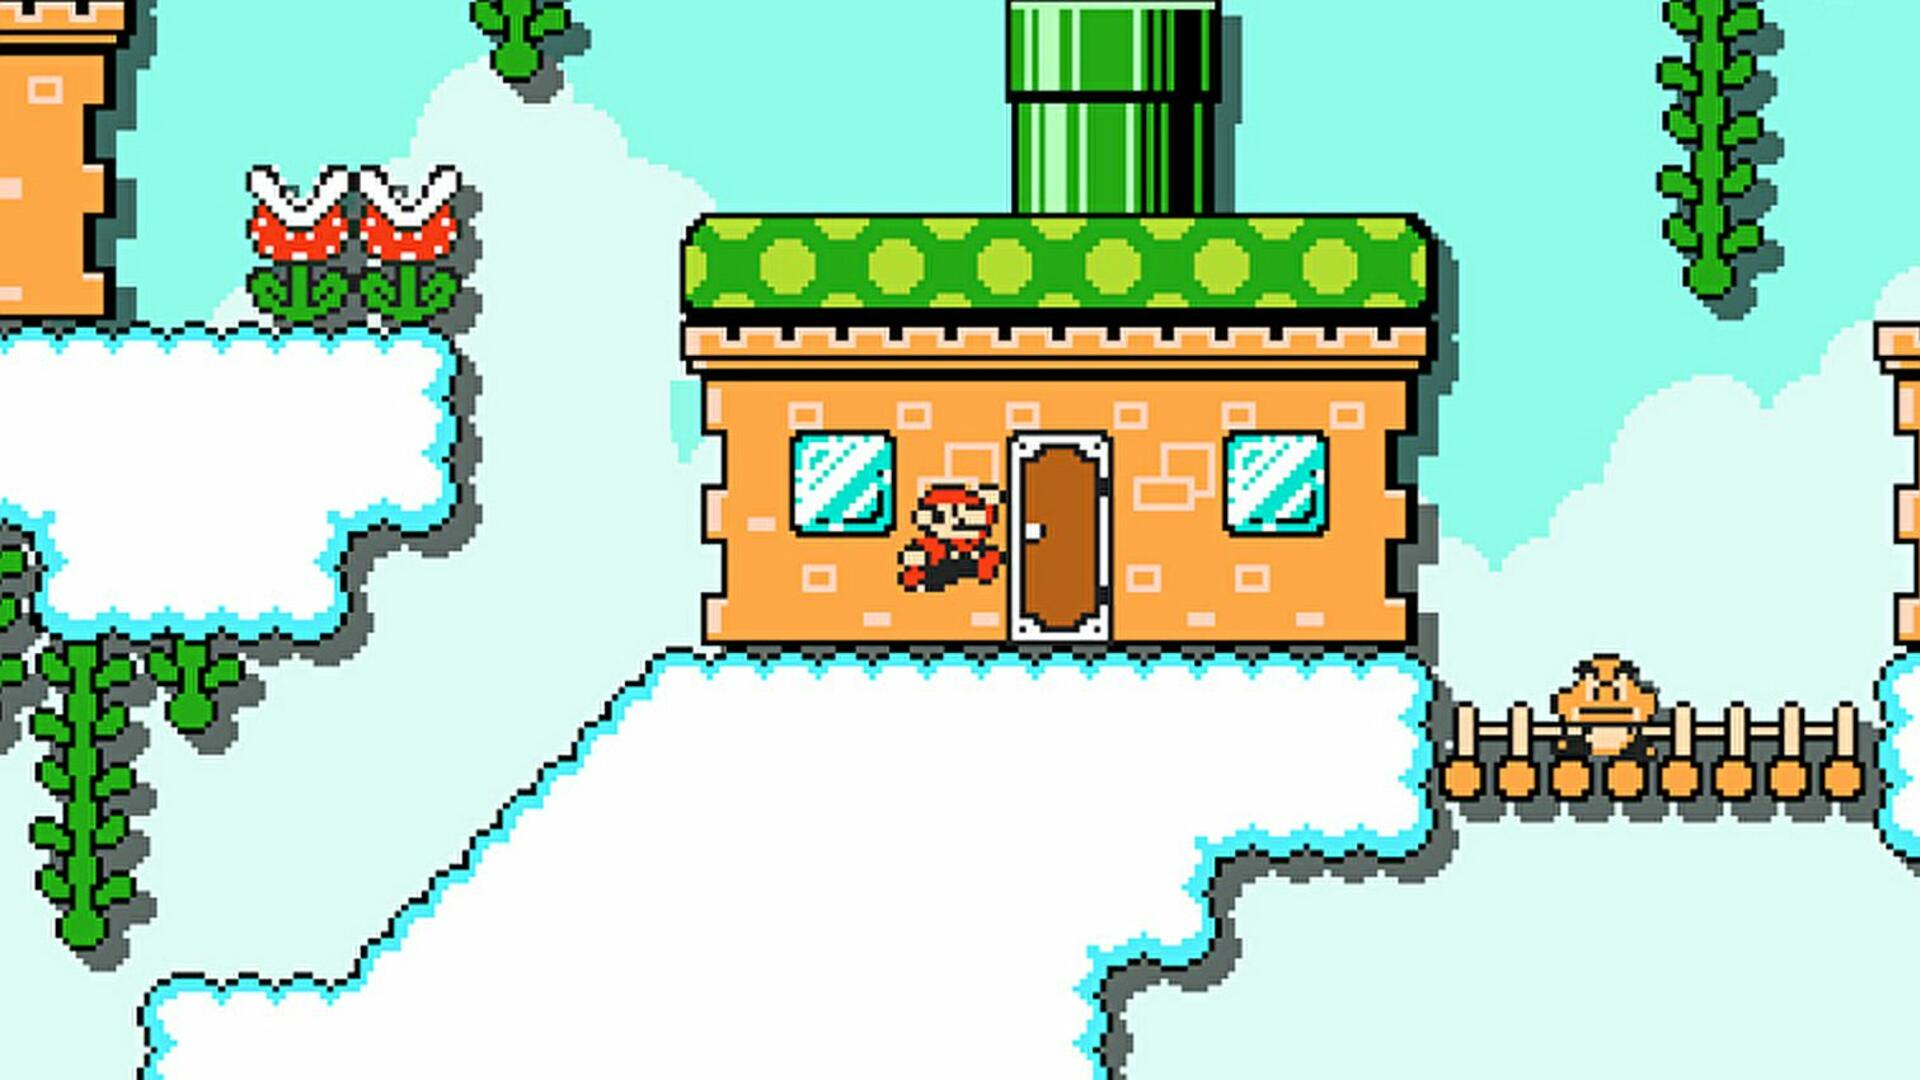 Super Mario Maker 2 Has All Its Build Features Unlocked From the Start, and It Feels so Fine